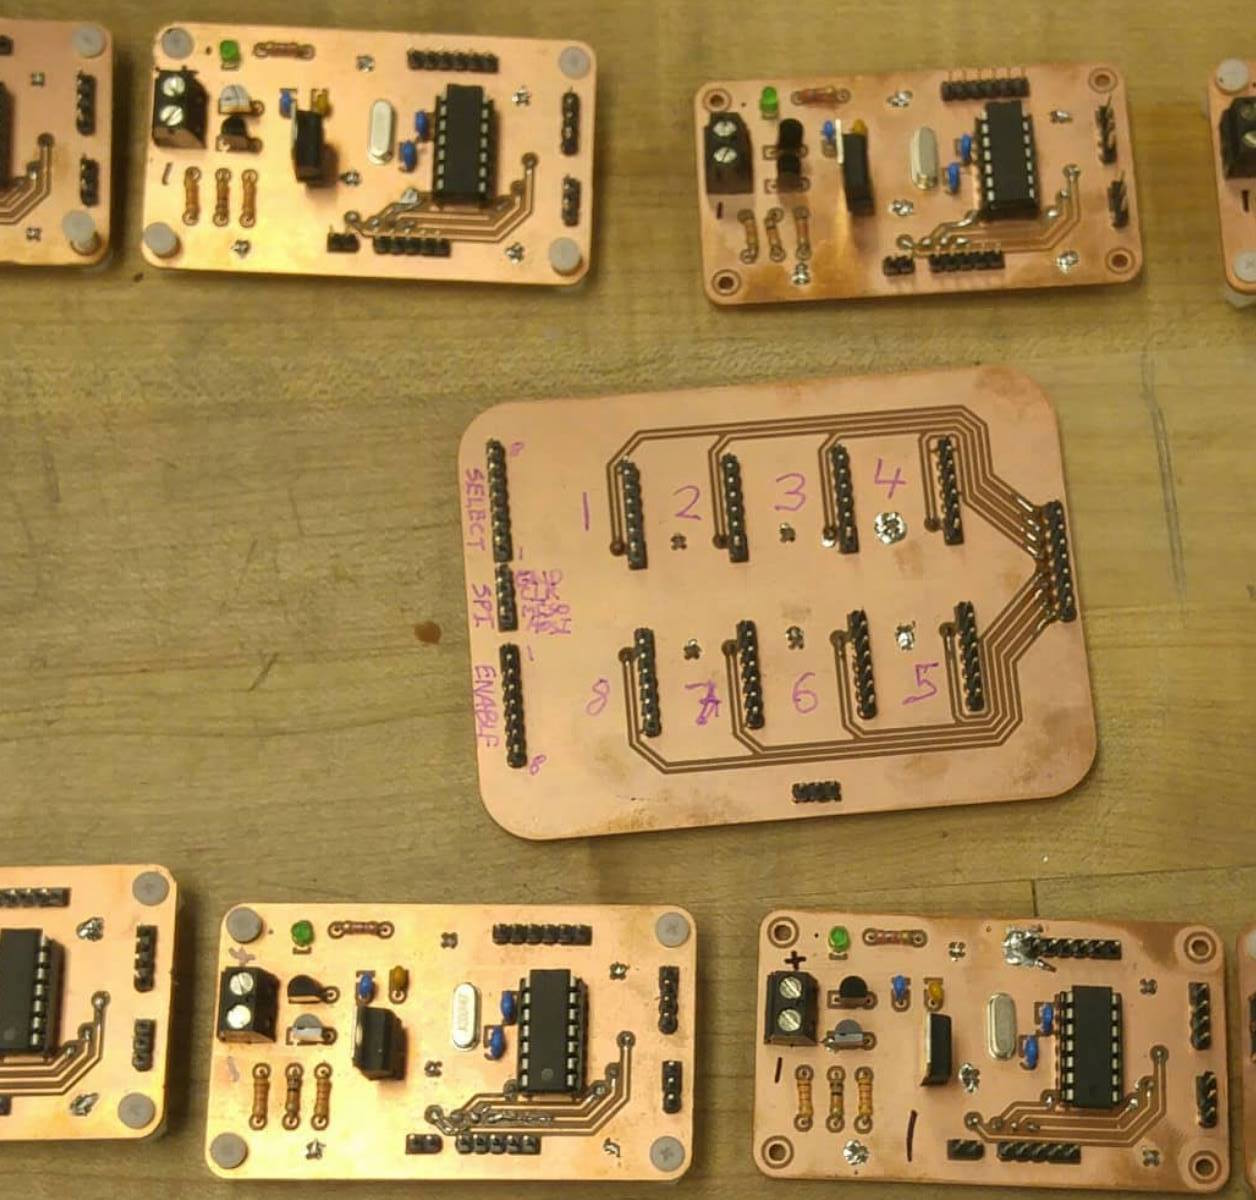 These boards were designed in  DipTrace  and milled on the precise, reliable Bantam Tools Desktop PCB Milling Machine.